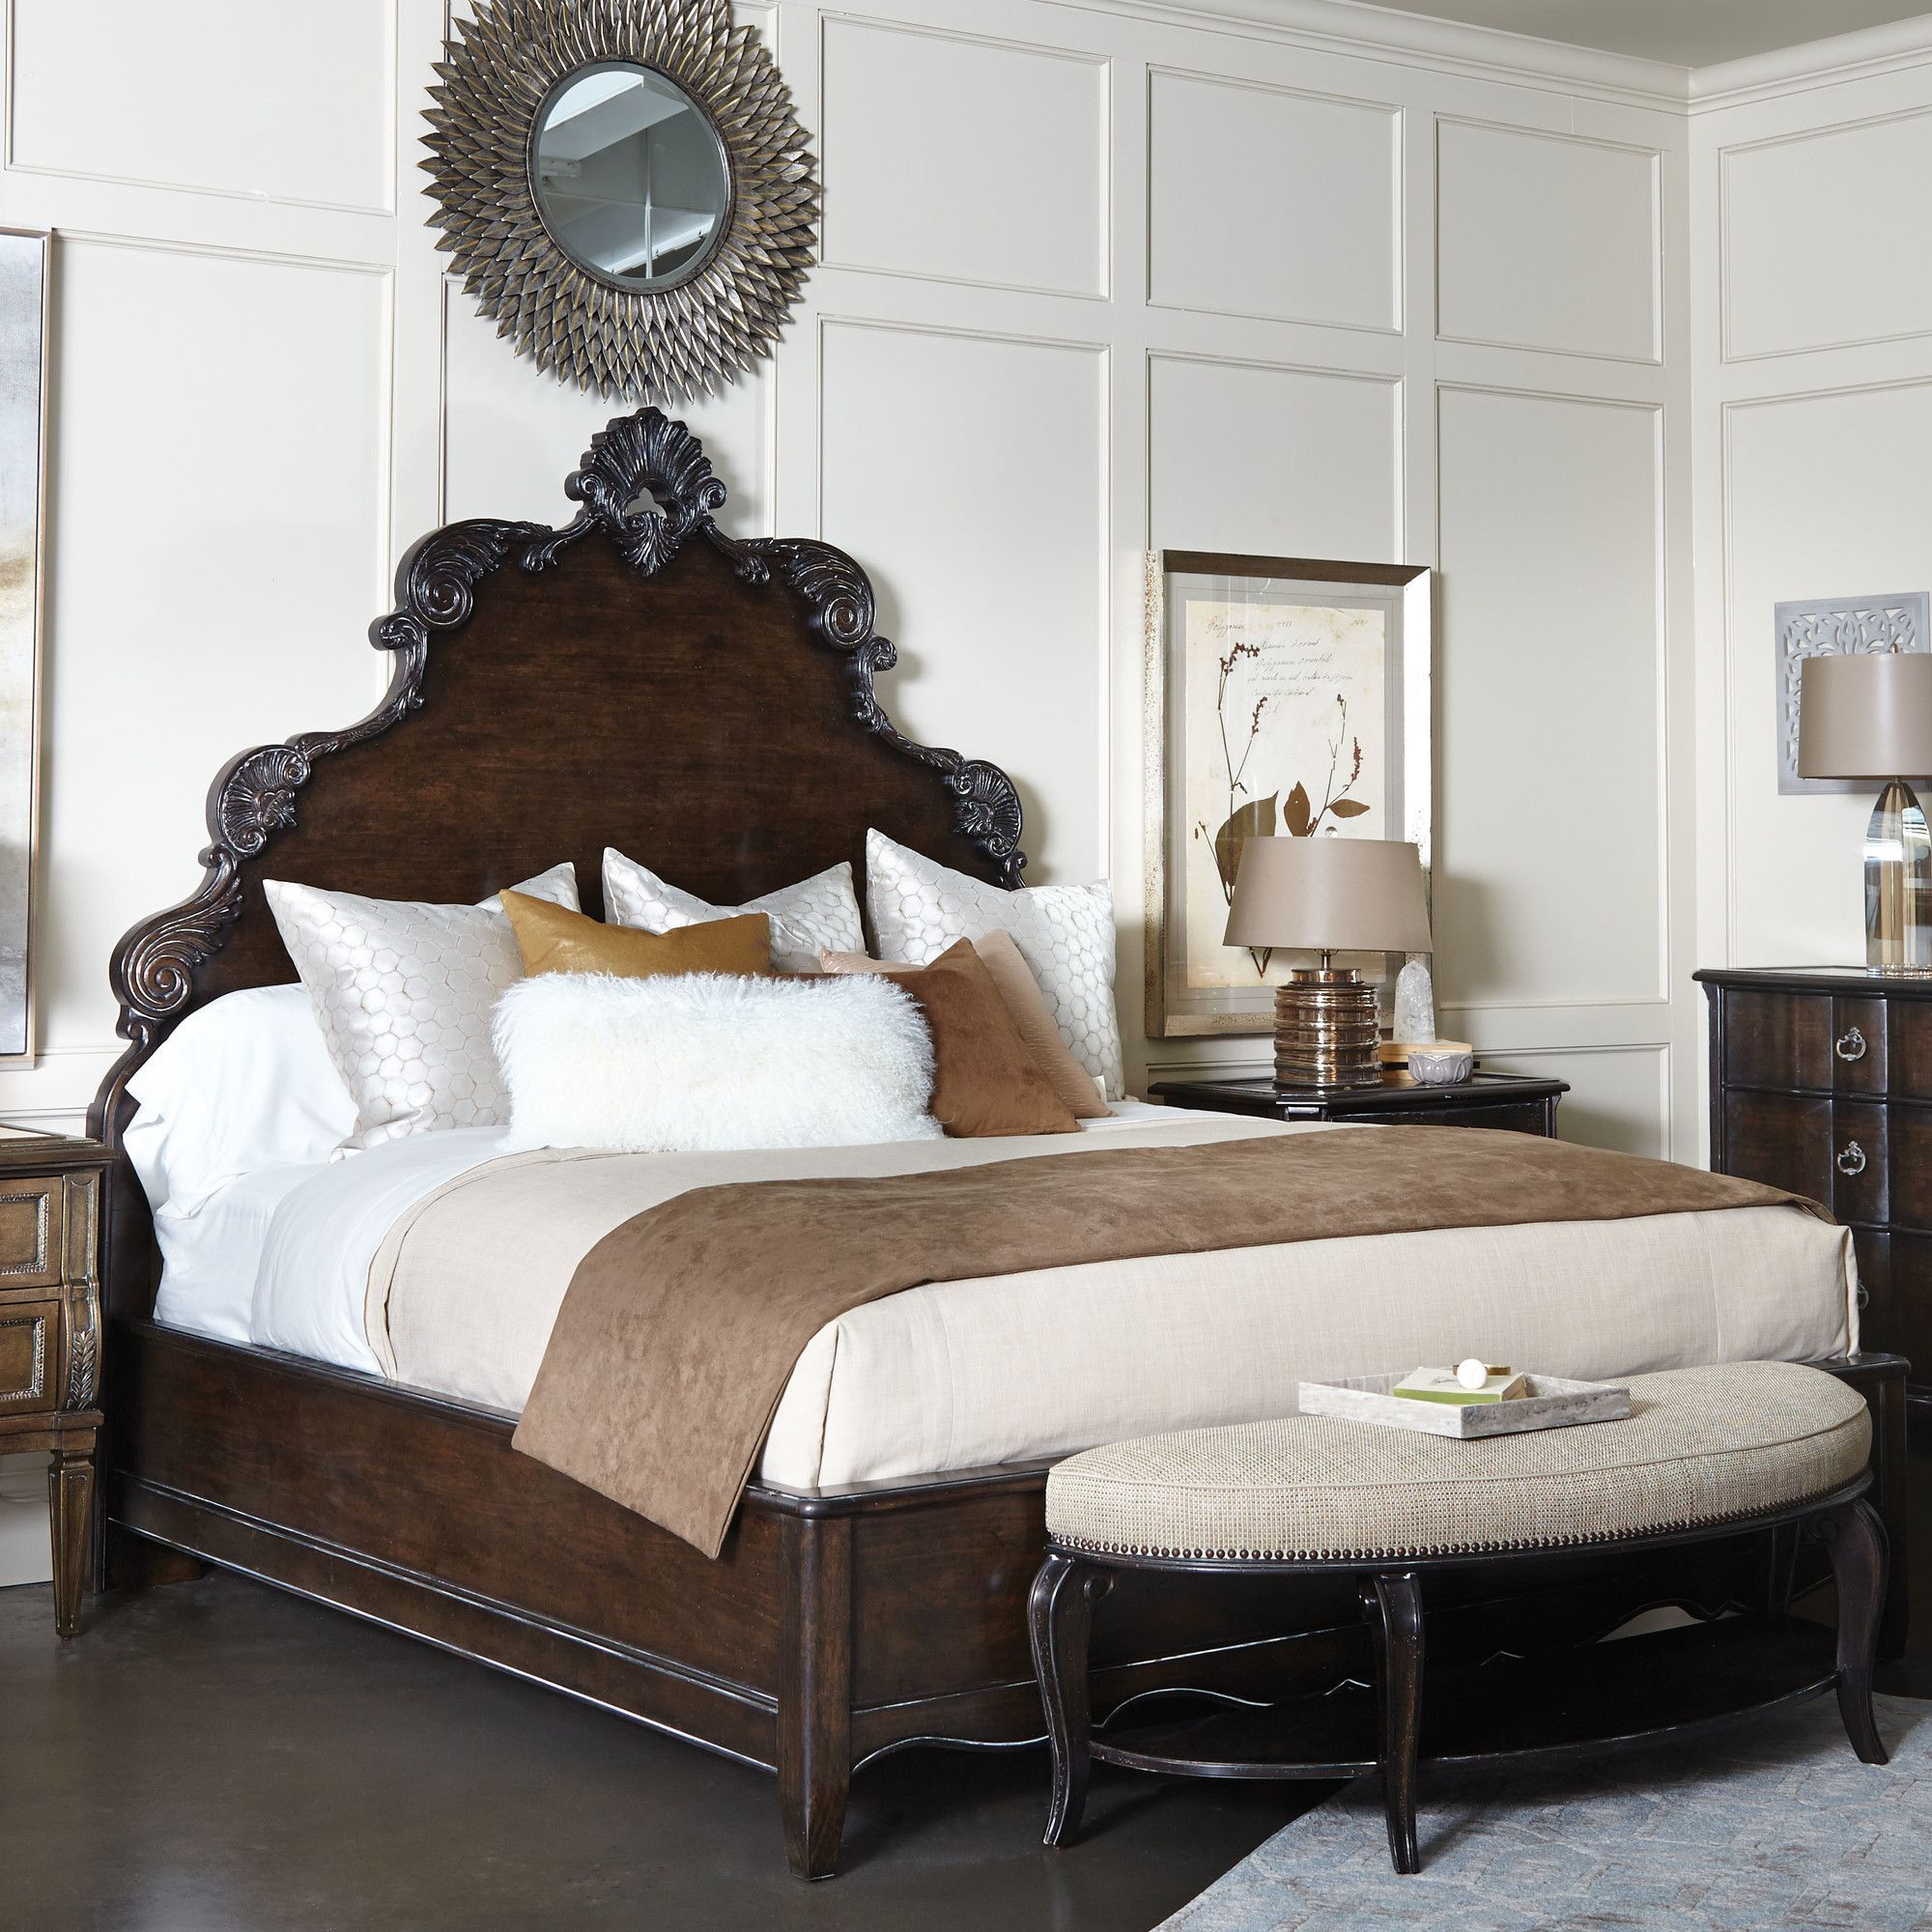 Sofitel Upholstery Panel Bed Furniture, Bed